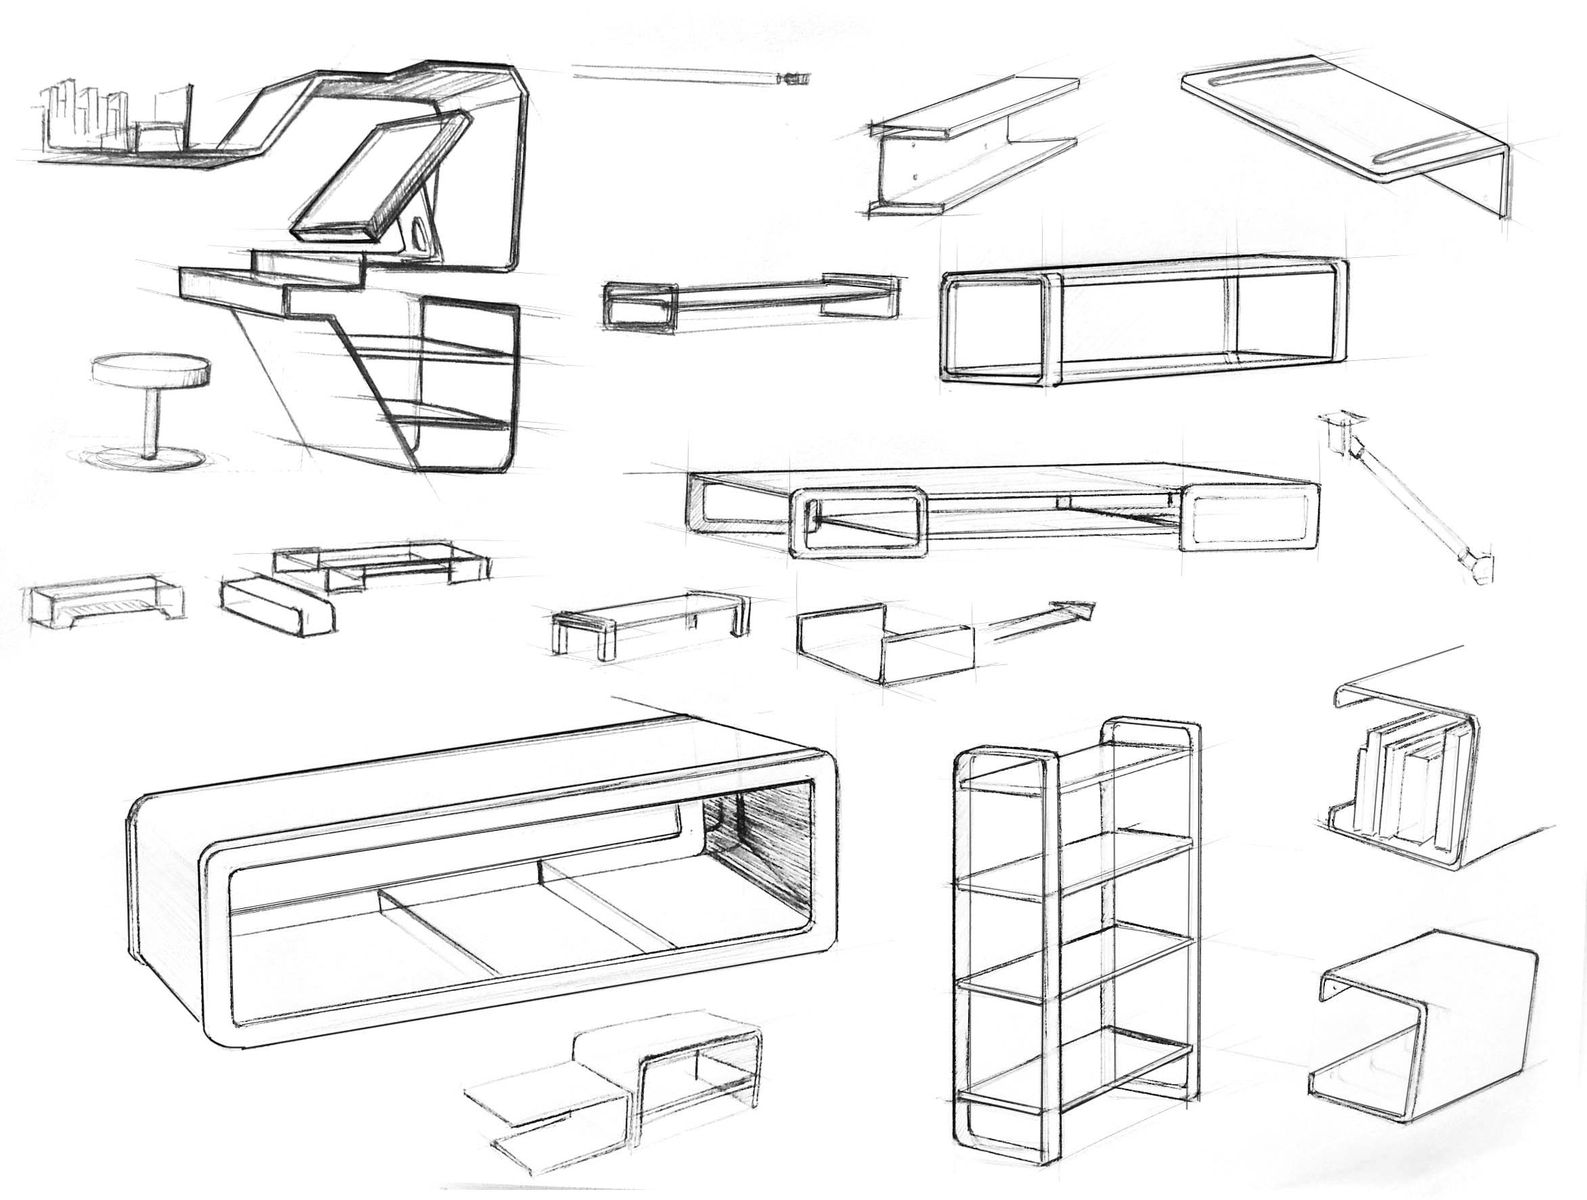 Furniture design sketches google search industrial for Furniture design sketches